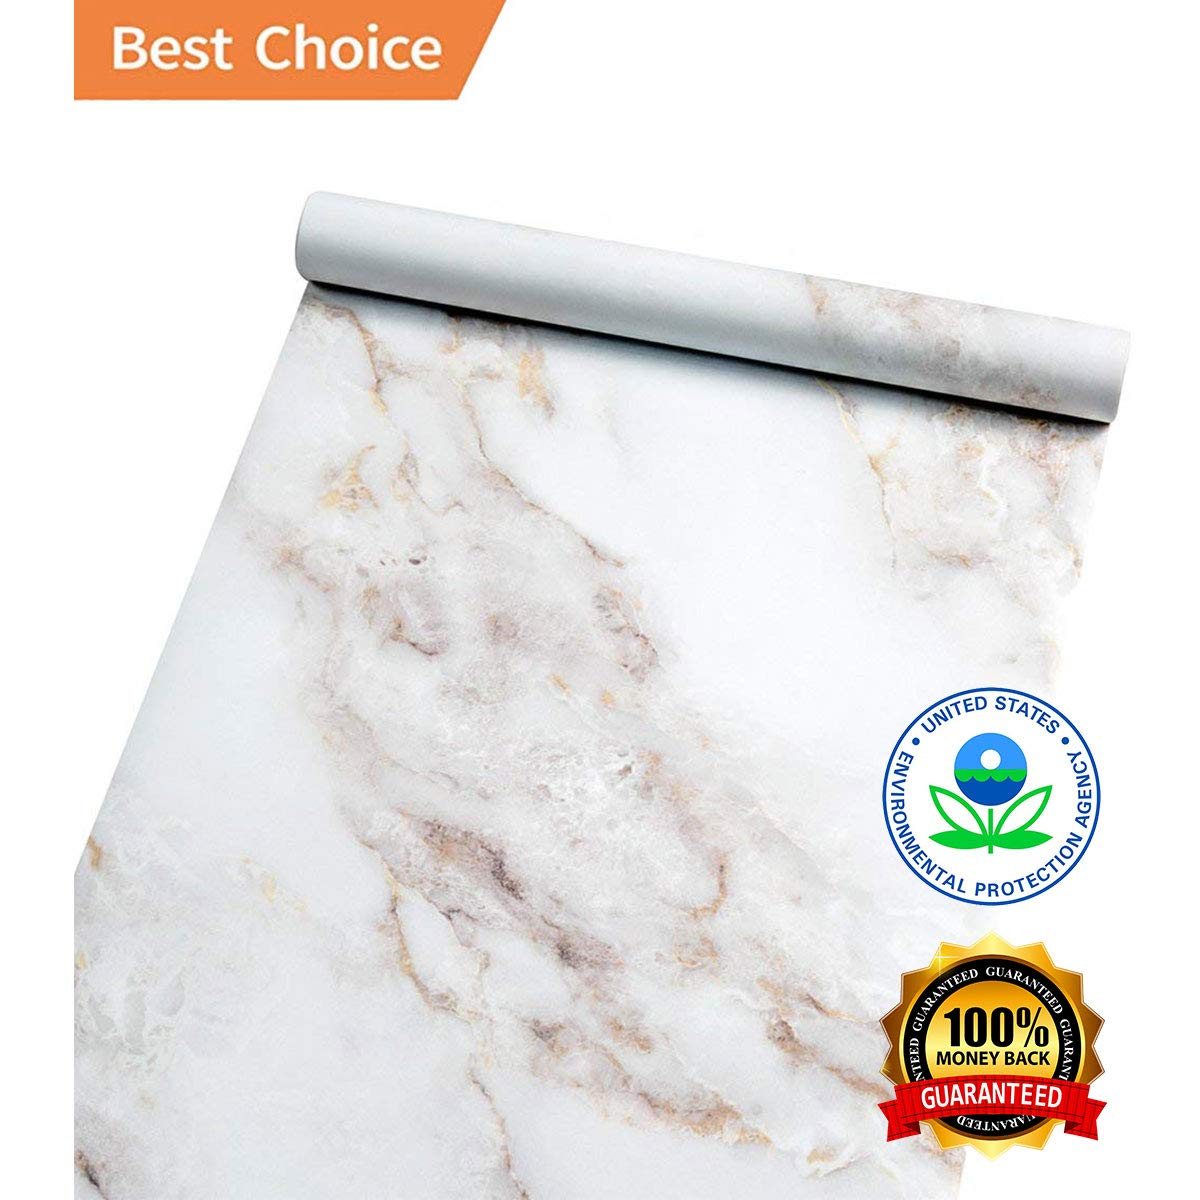 Abyssaly 16'' X 118'' Marble Contact Paper Film Peel and Stick Countertops, Authentic Marble Look, Durable, Waterproof for Home and Office